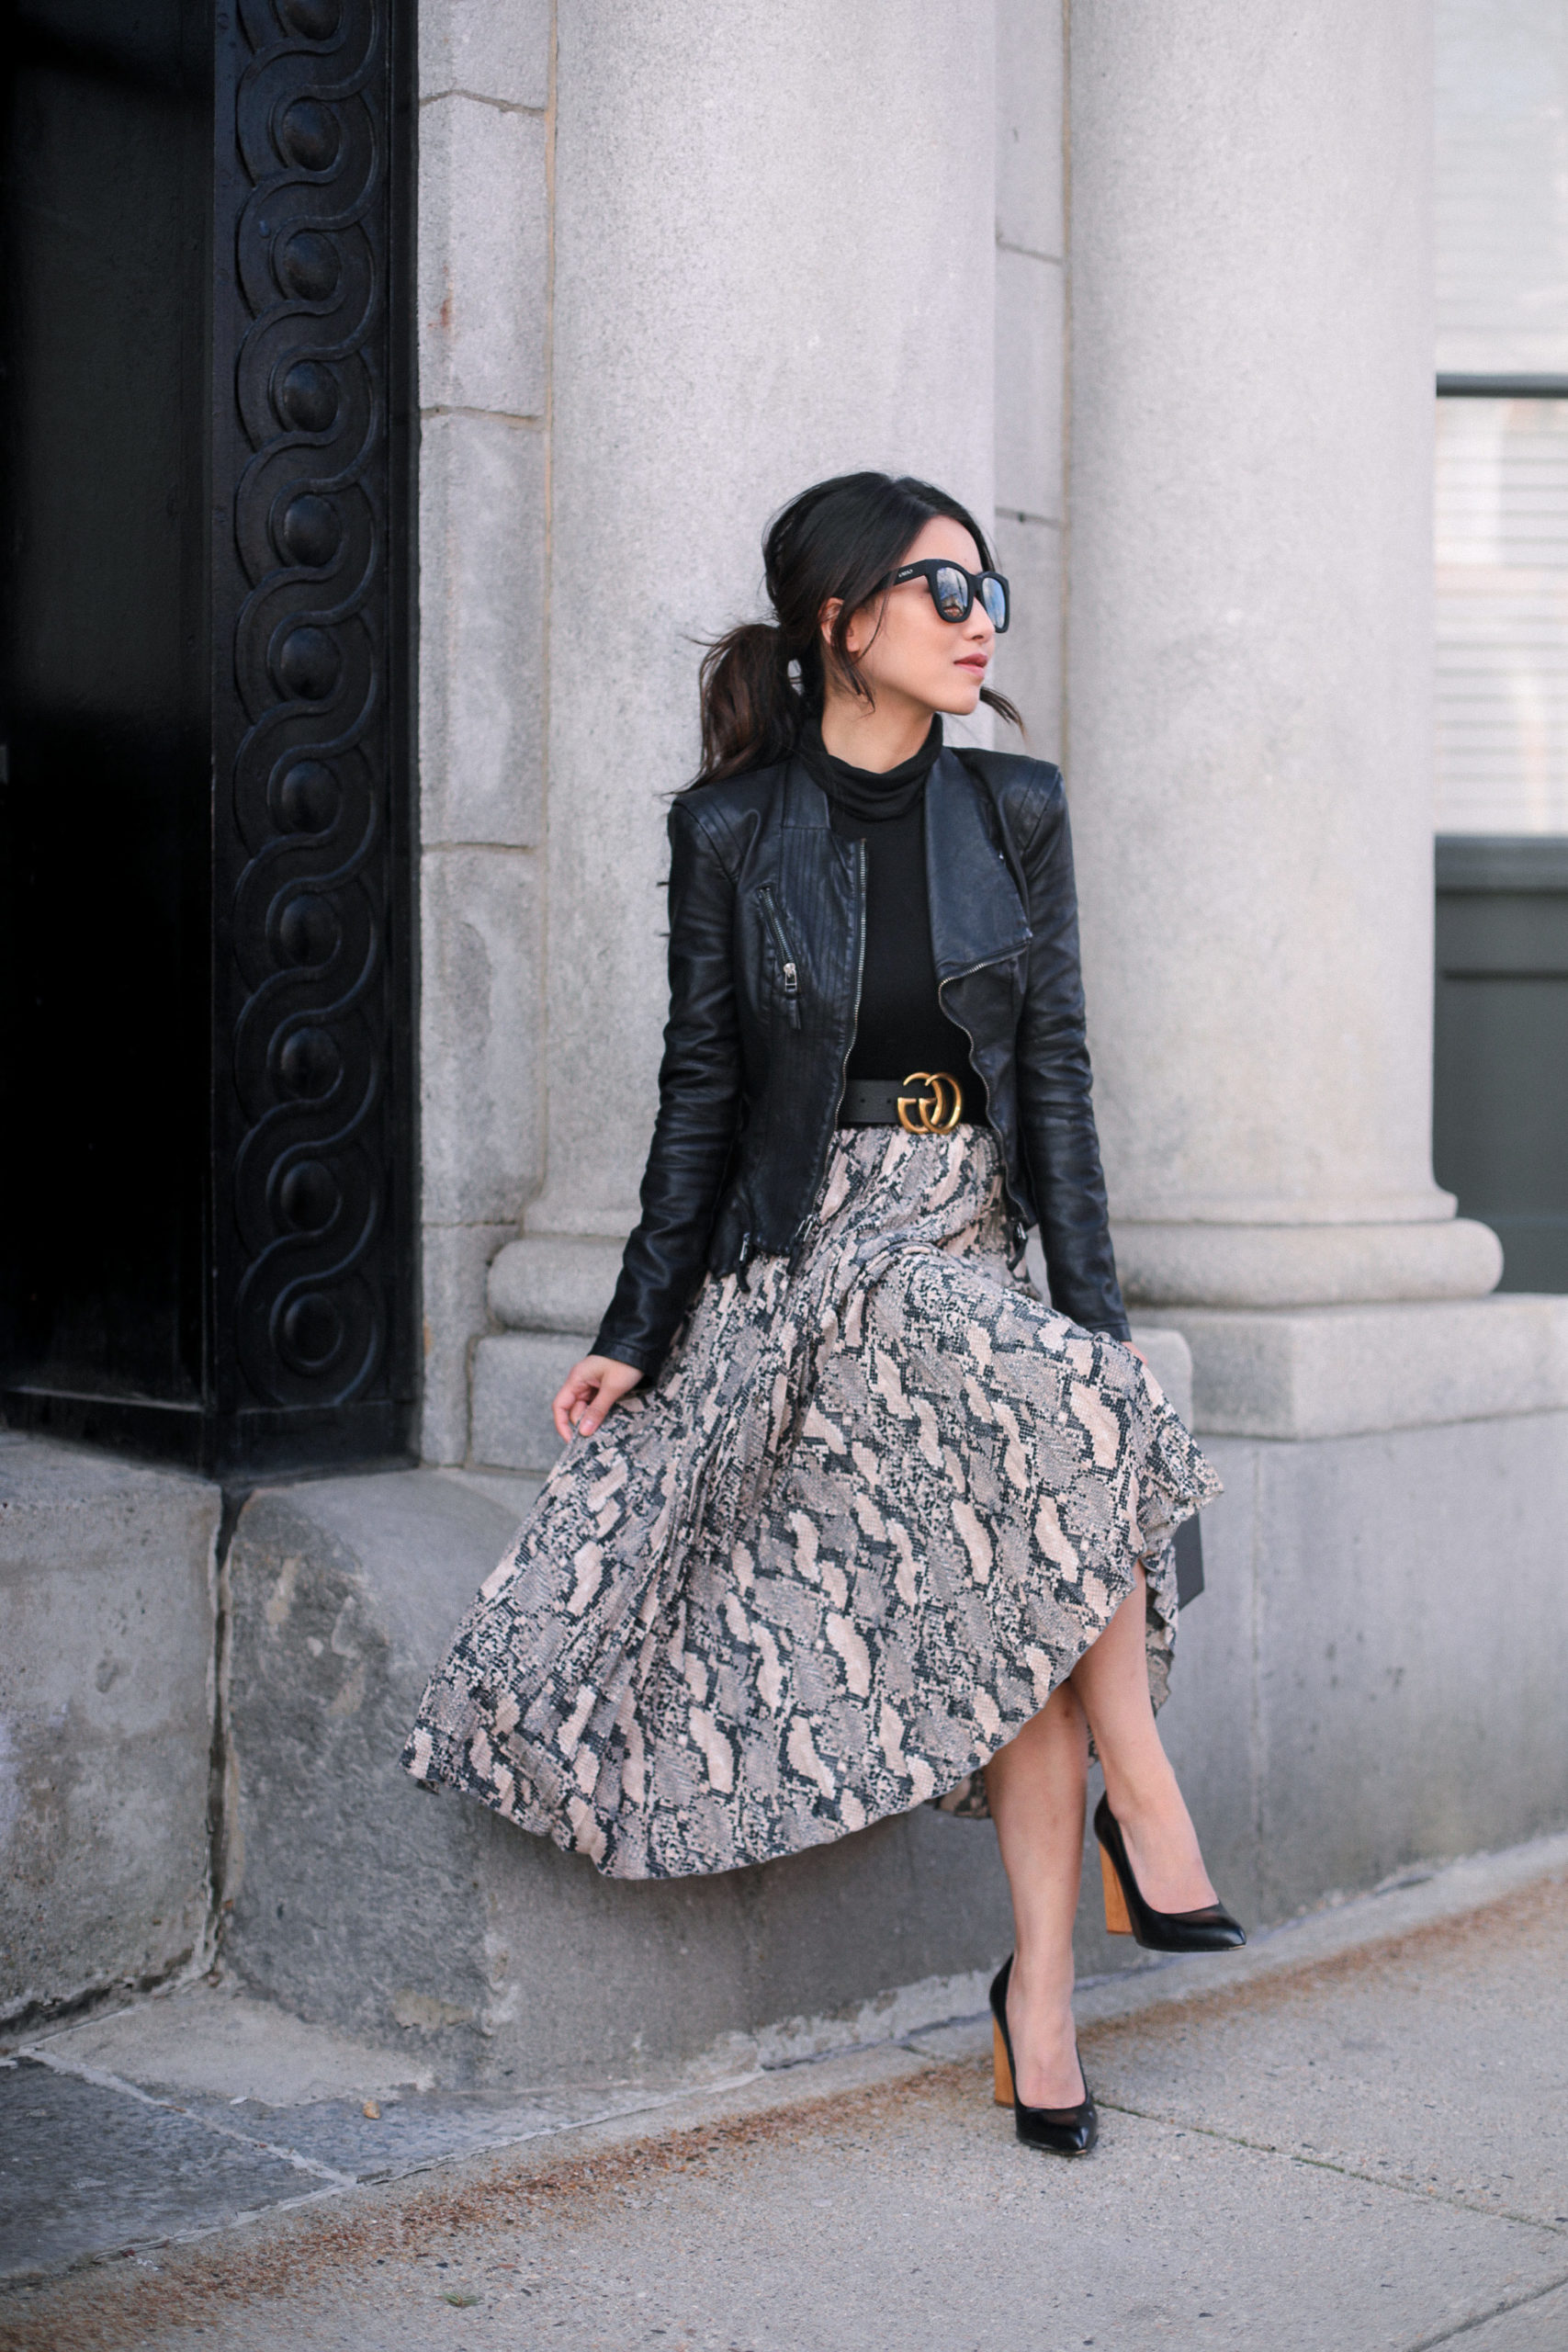 Faux Leather Jacket with a Flowing Skirt